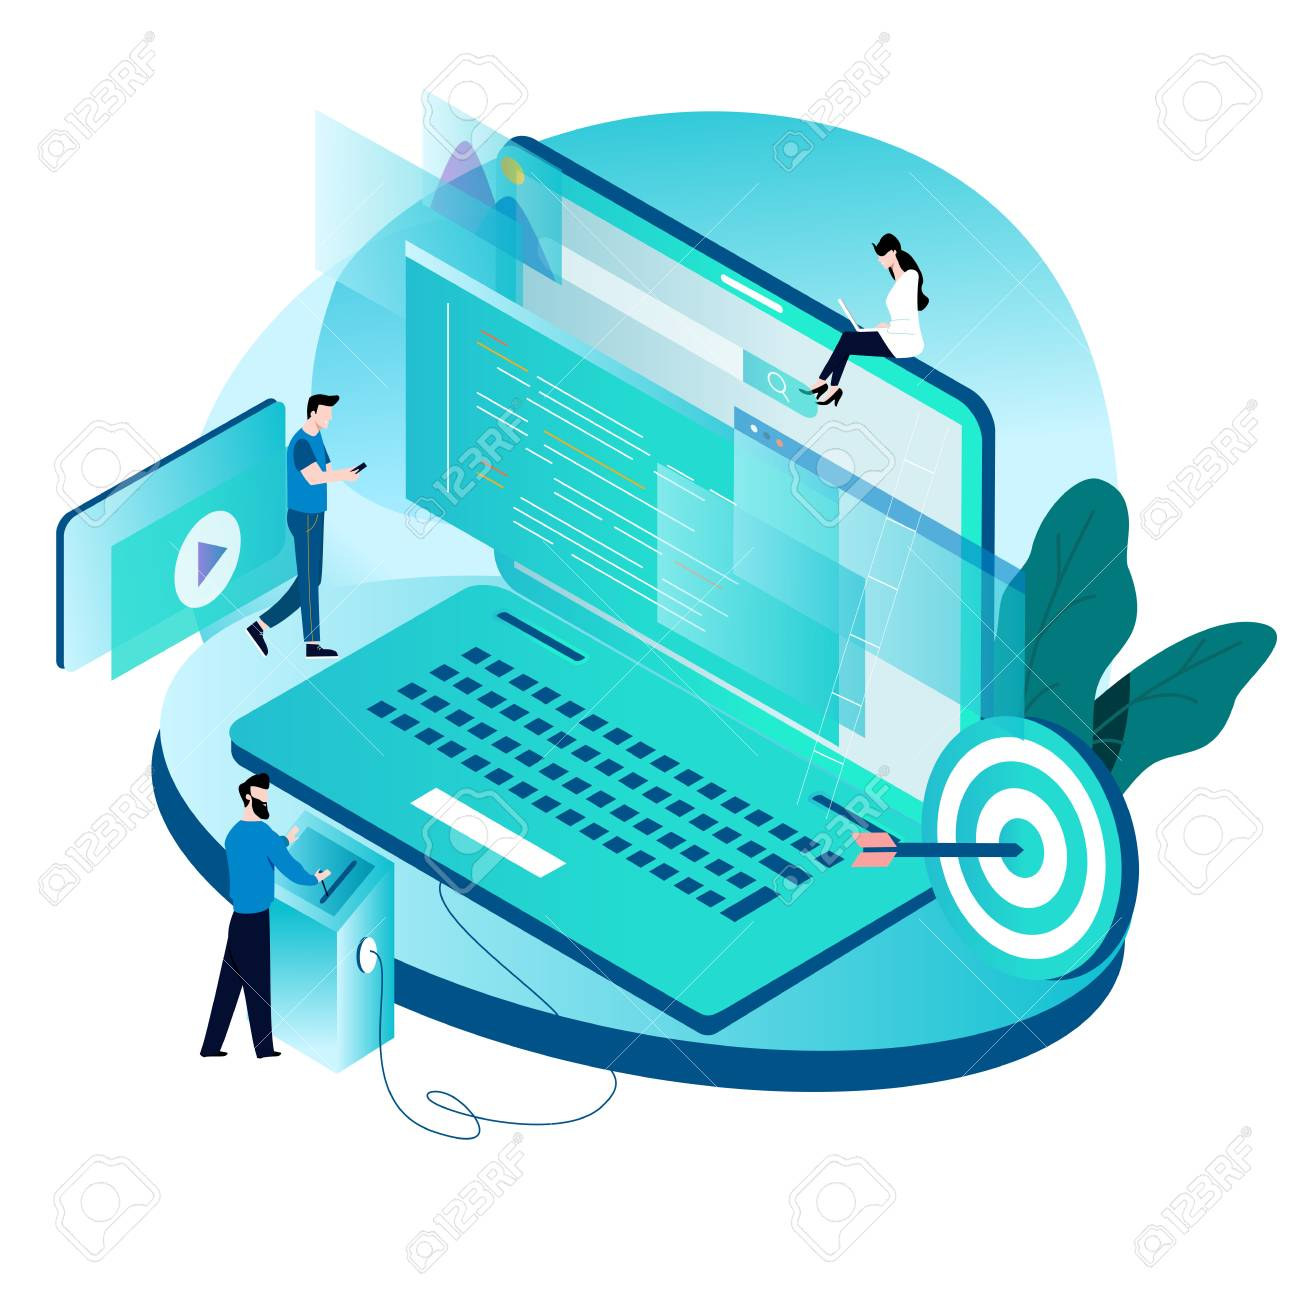 Modern isometric concept for coding, programming, website and application development vector illustration design for mobile and web graphics - 102149295